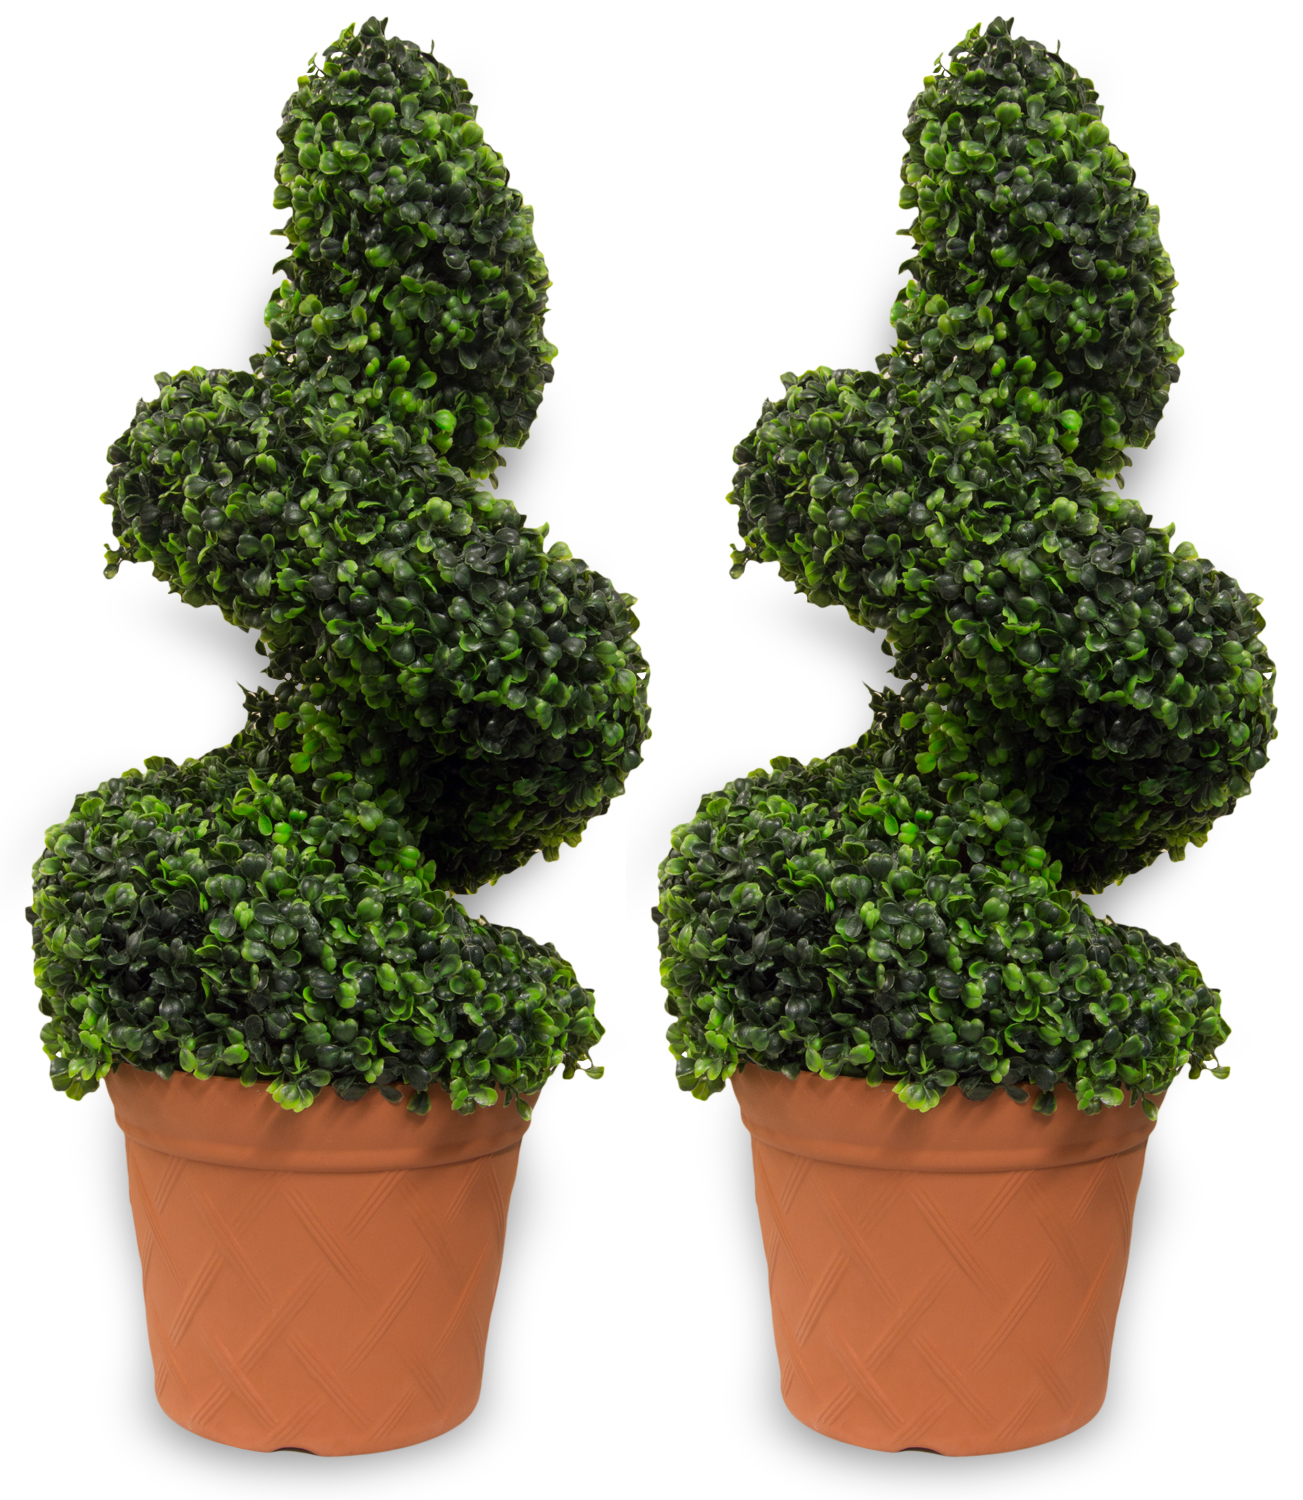 woodside artificial topiary swirl trees 2 pack | ornamental Artificial Topiary Trees